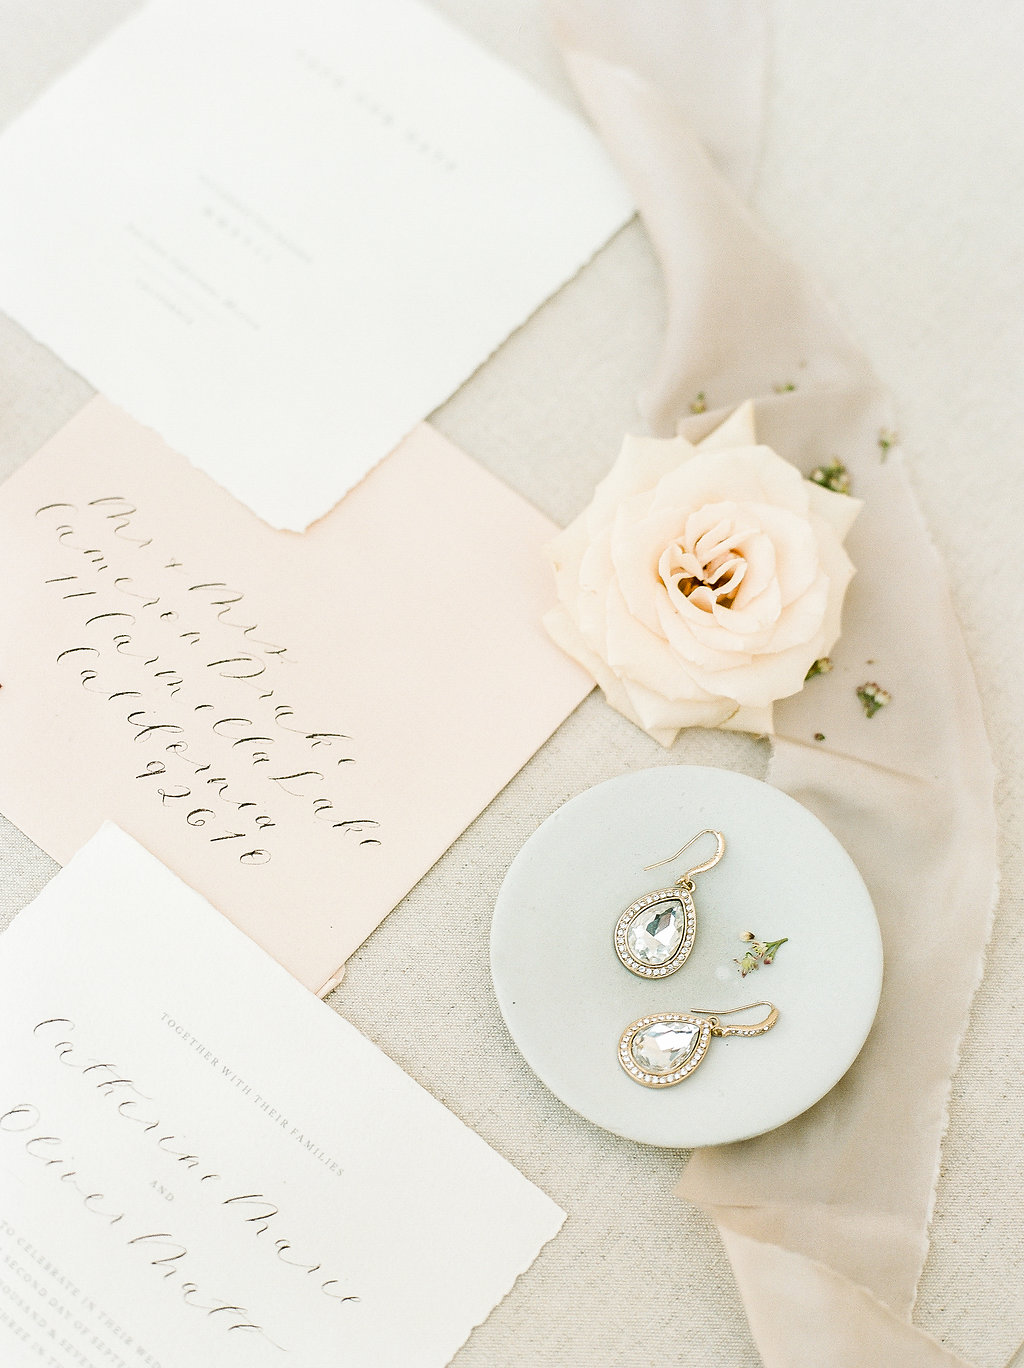 Spanish Mission Style Wedding Ideas Bridal Accessories Summer Flowers Finding Flora Wedding Sparrow Fine Art Flourish Calligraphy Invites Stationery San Juan Capistrano